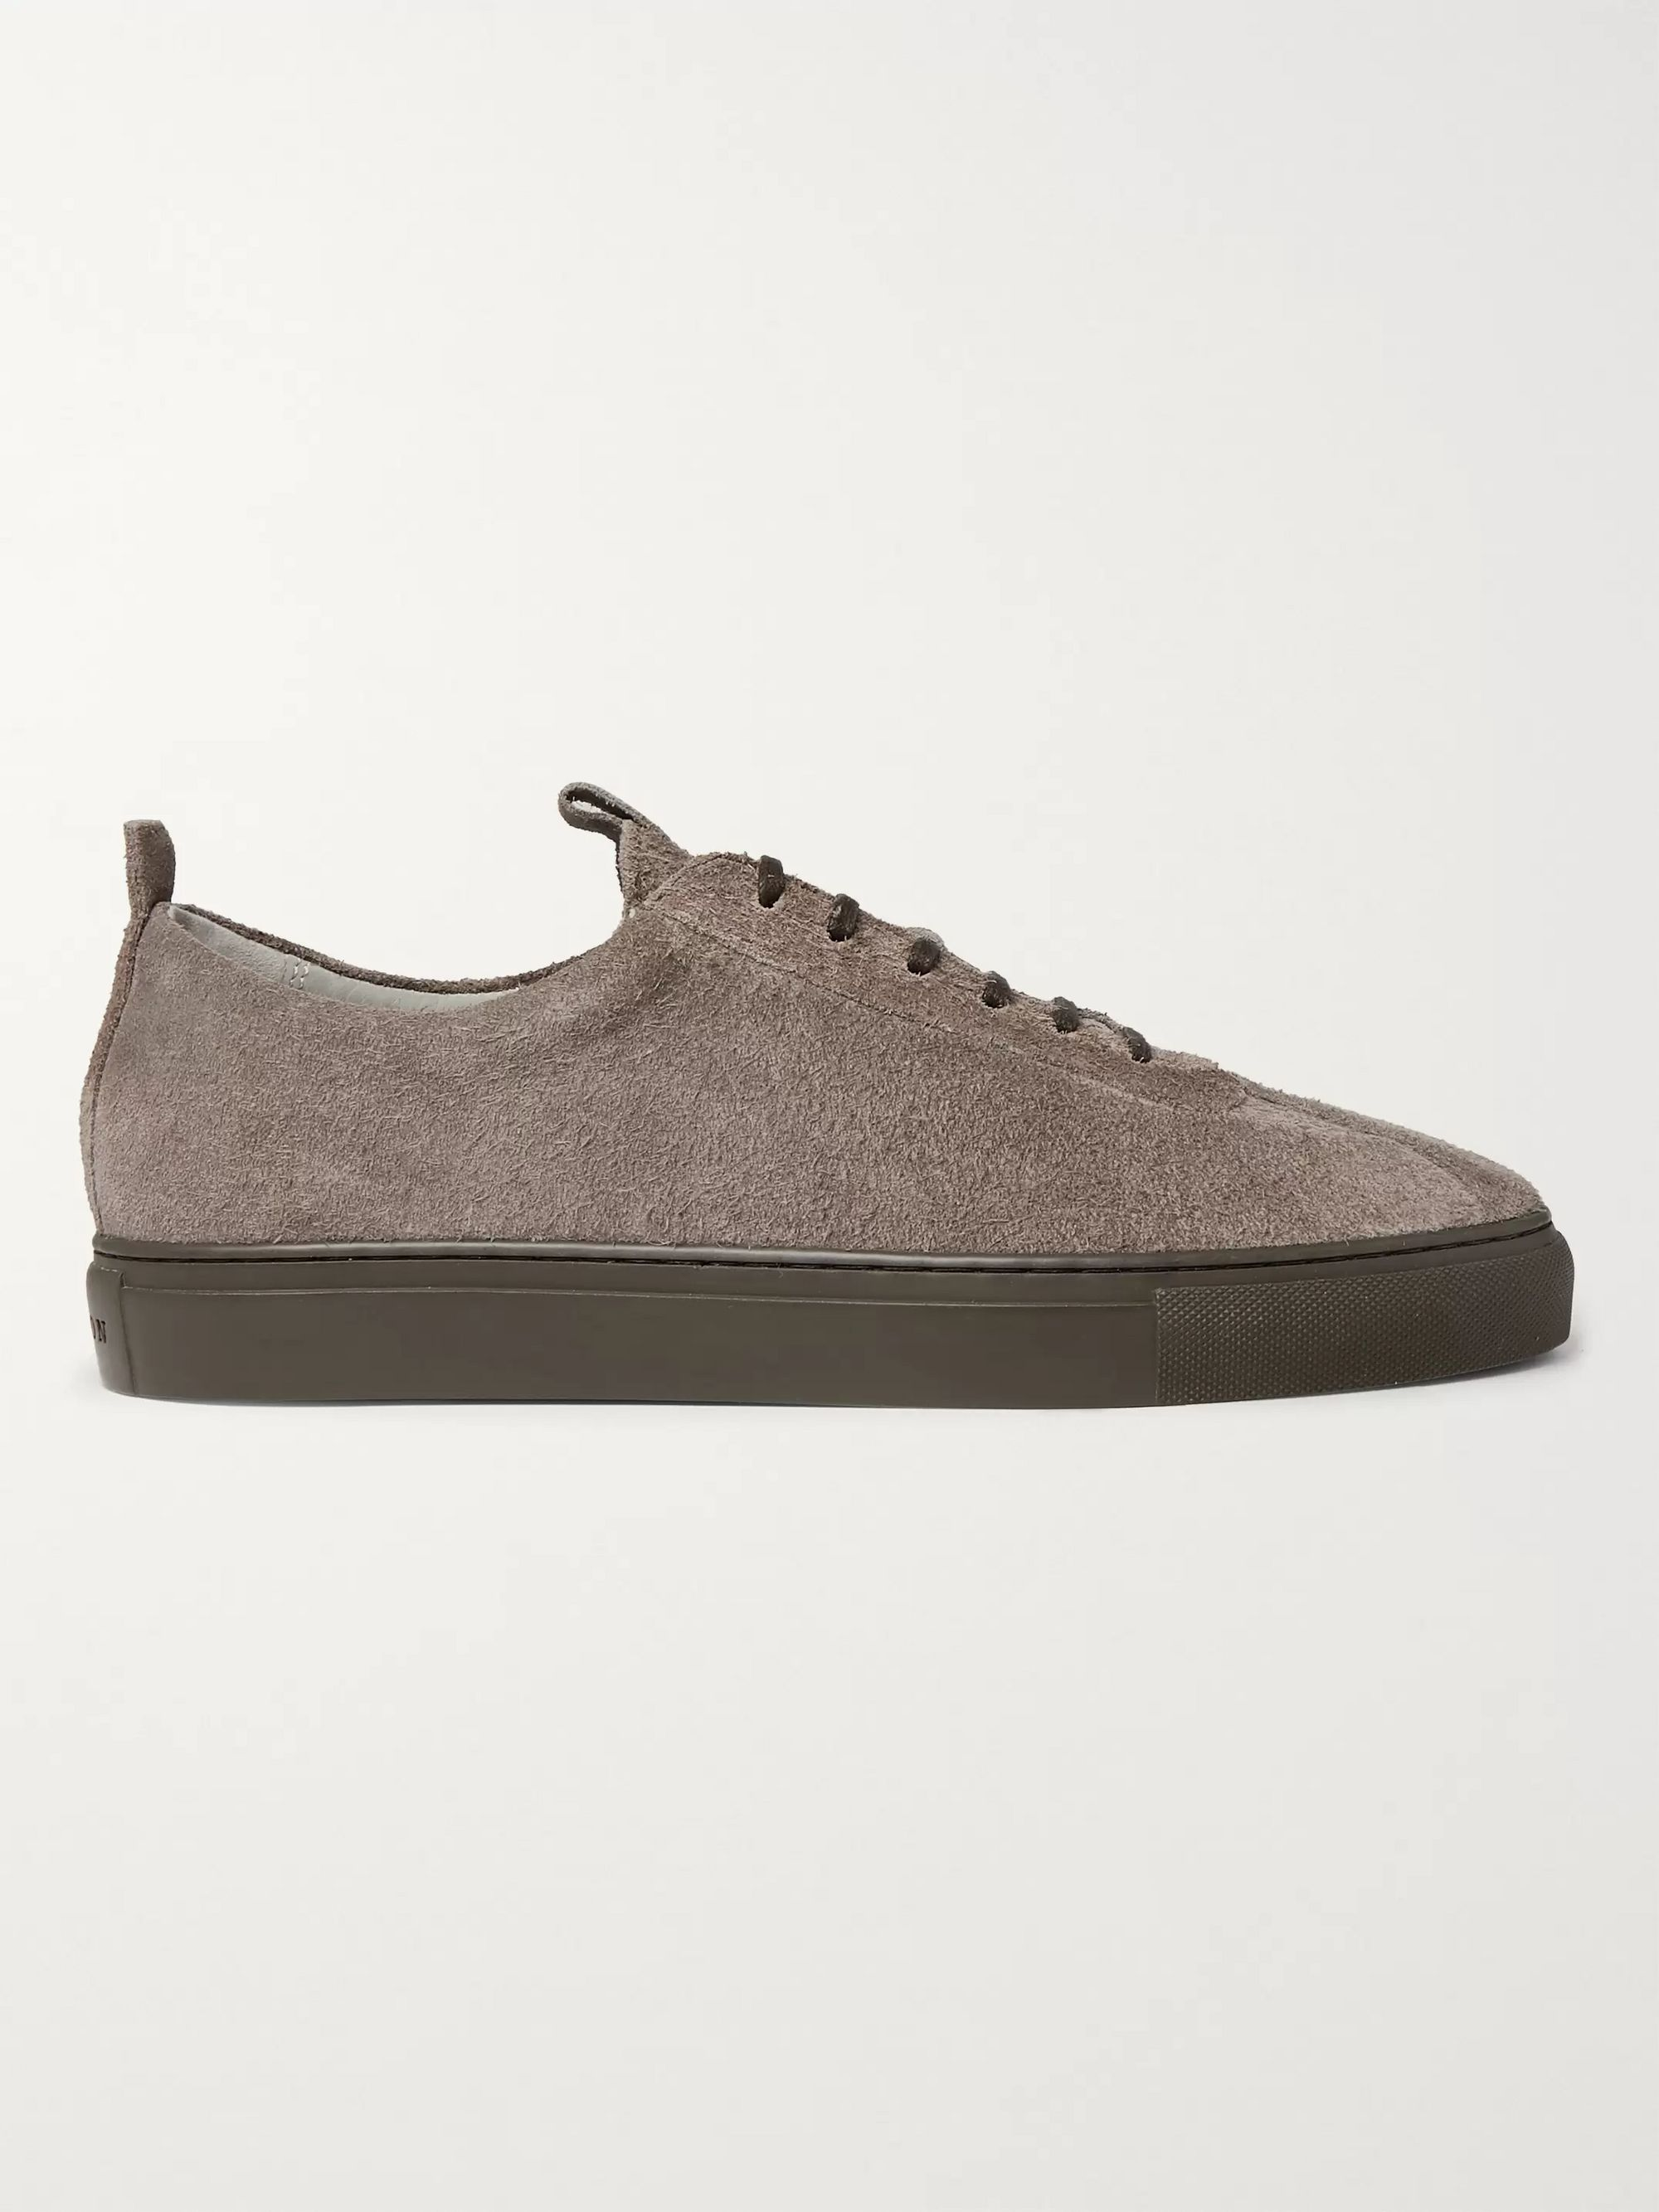 Grenson Textured-Suede Sneakers